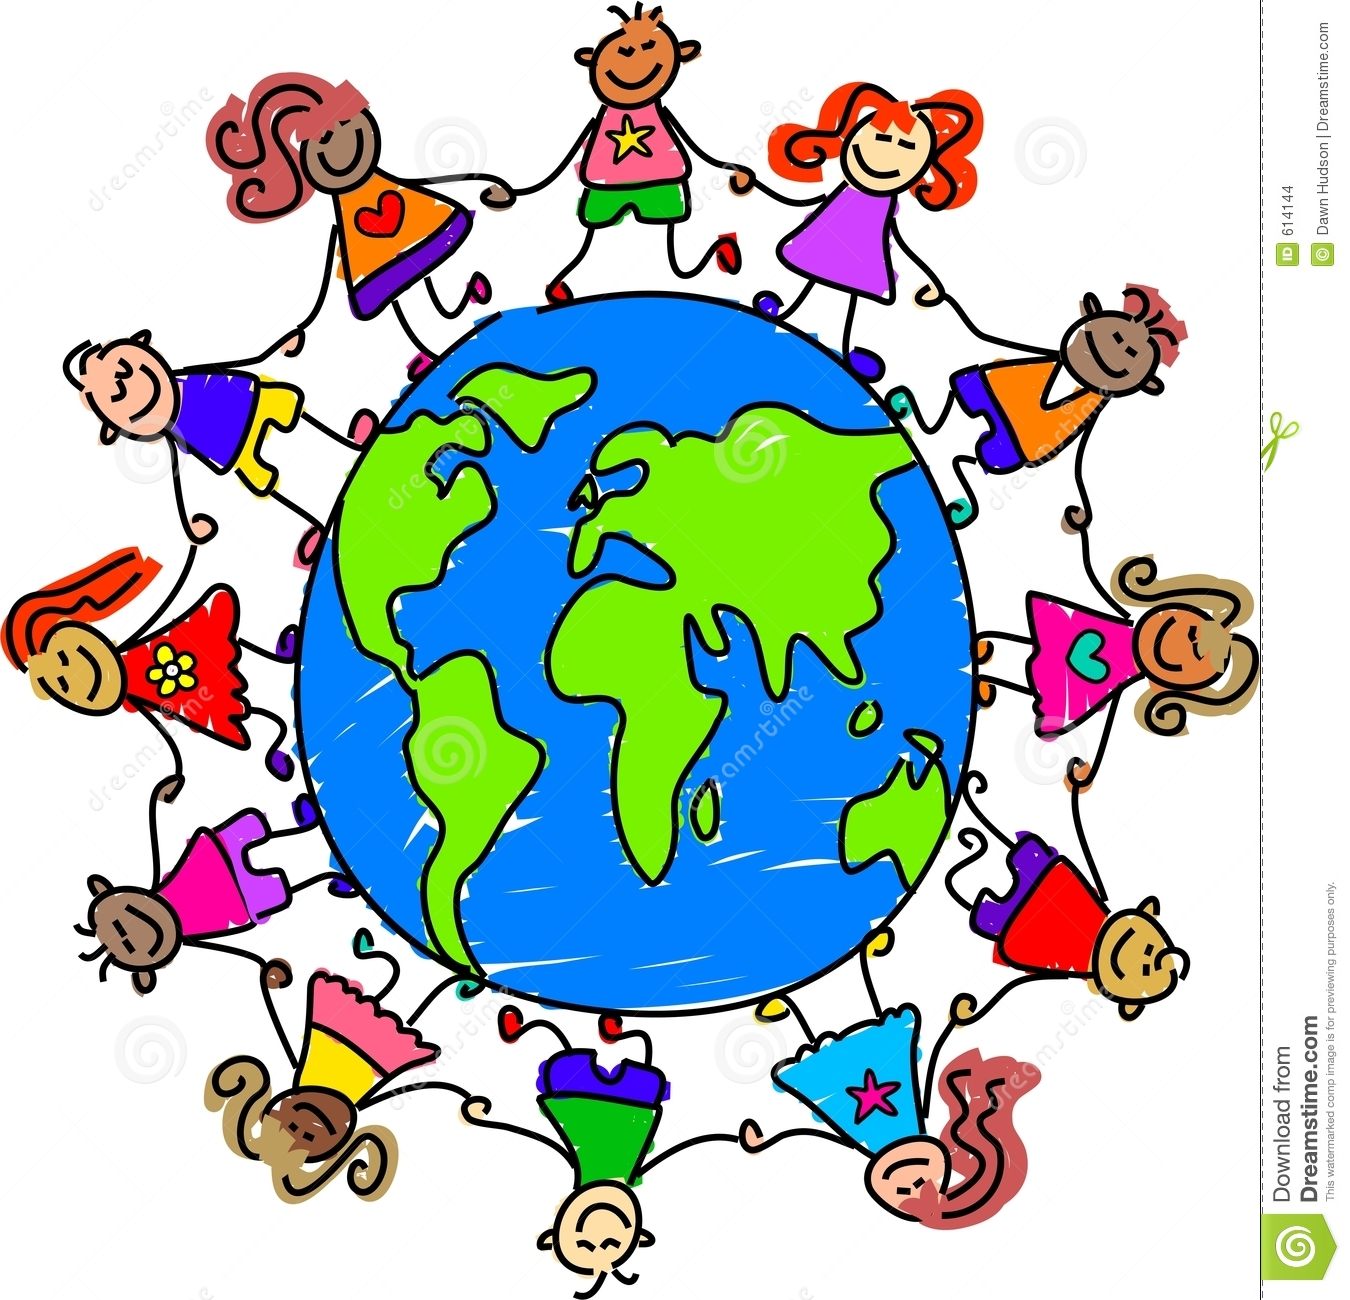 Diverse Children Holding Hands Clipart Happy and diverse kids holding